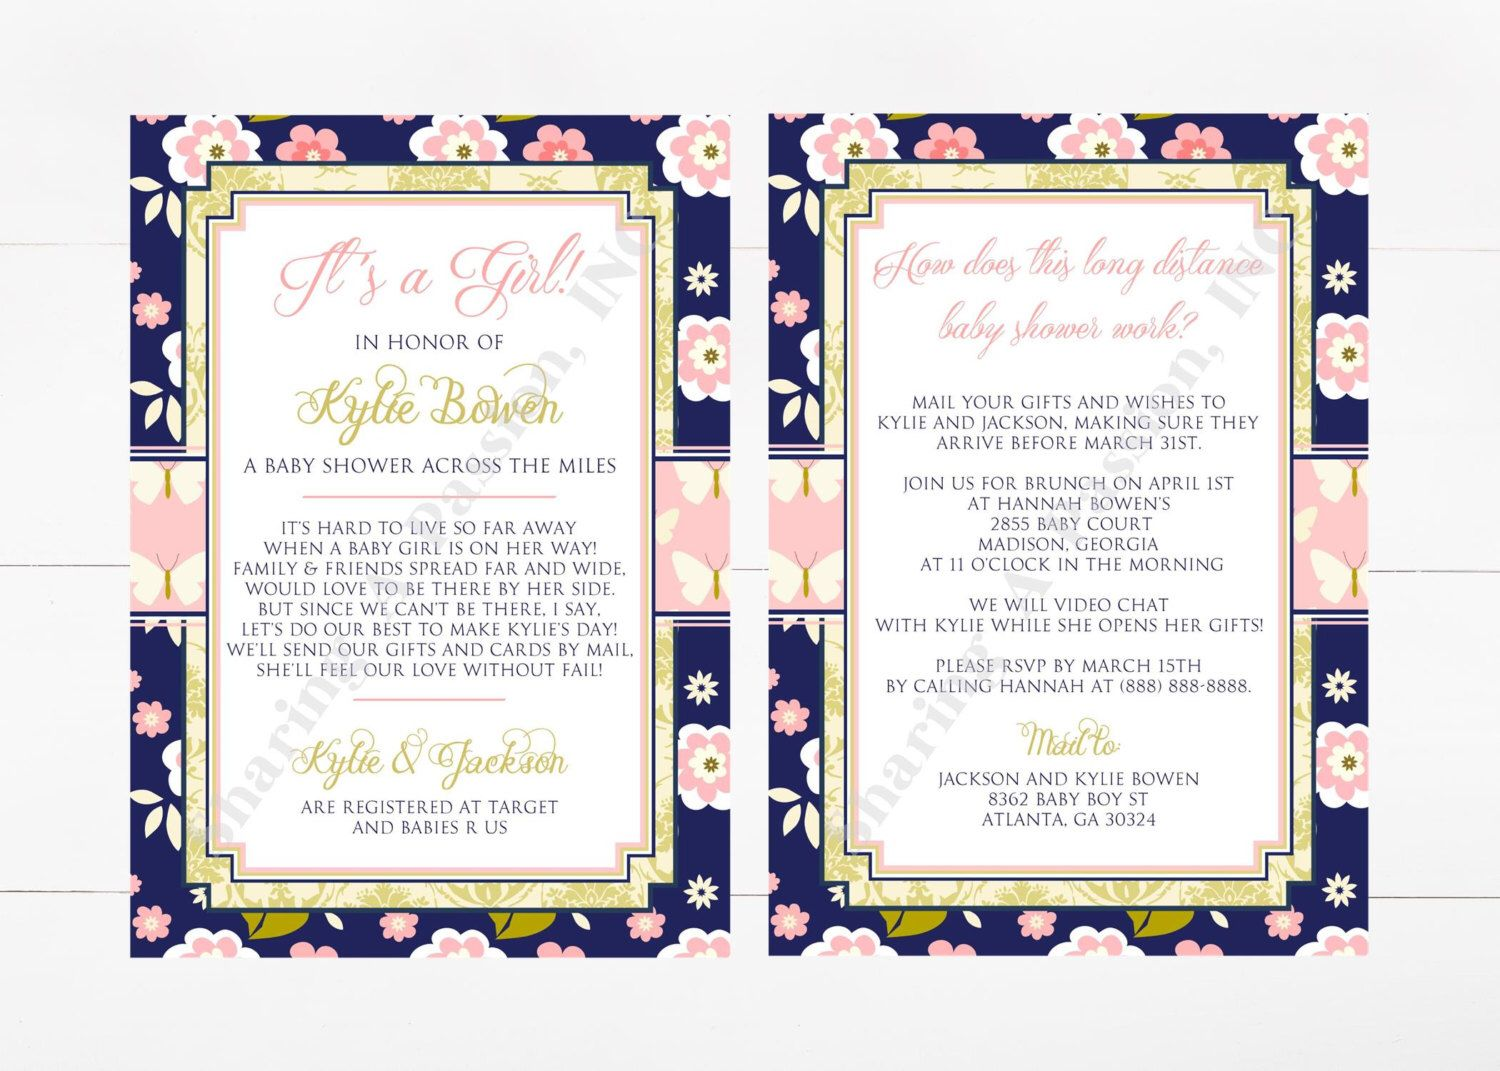 Long Distance Baby Shower Invitation - Shower By Mail Invite ...